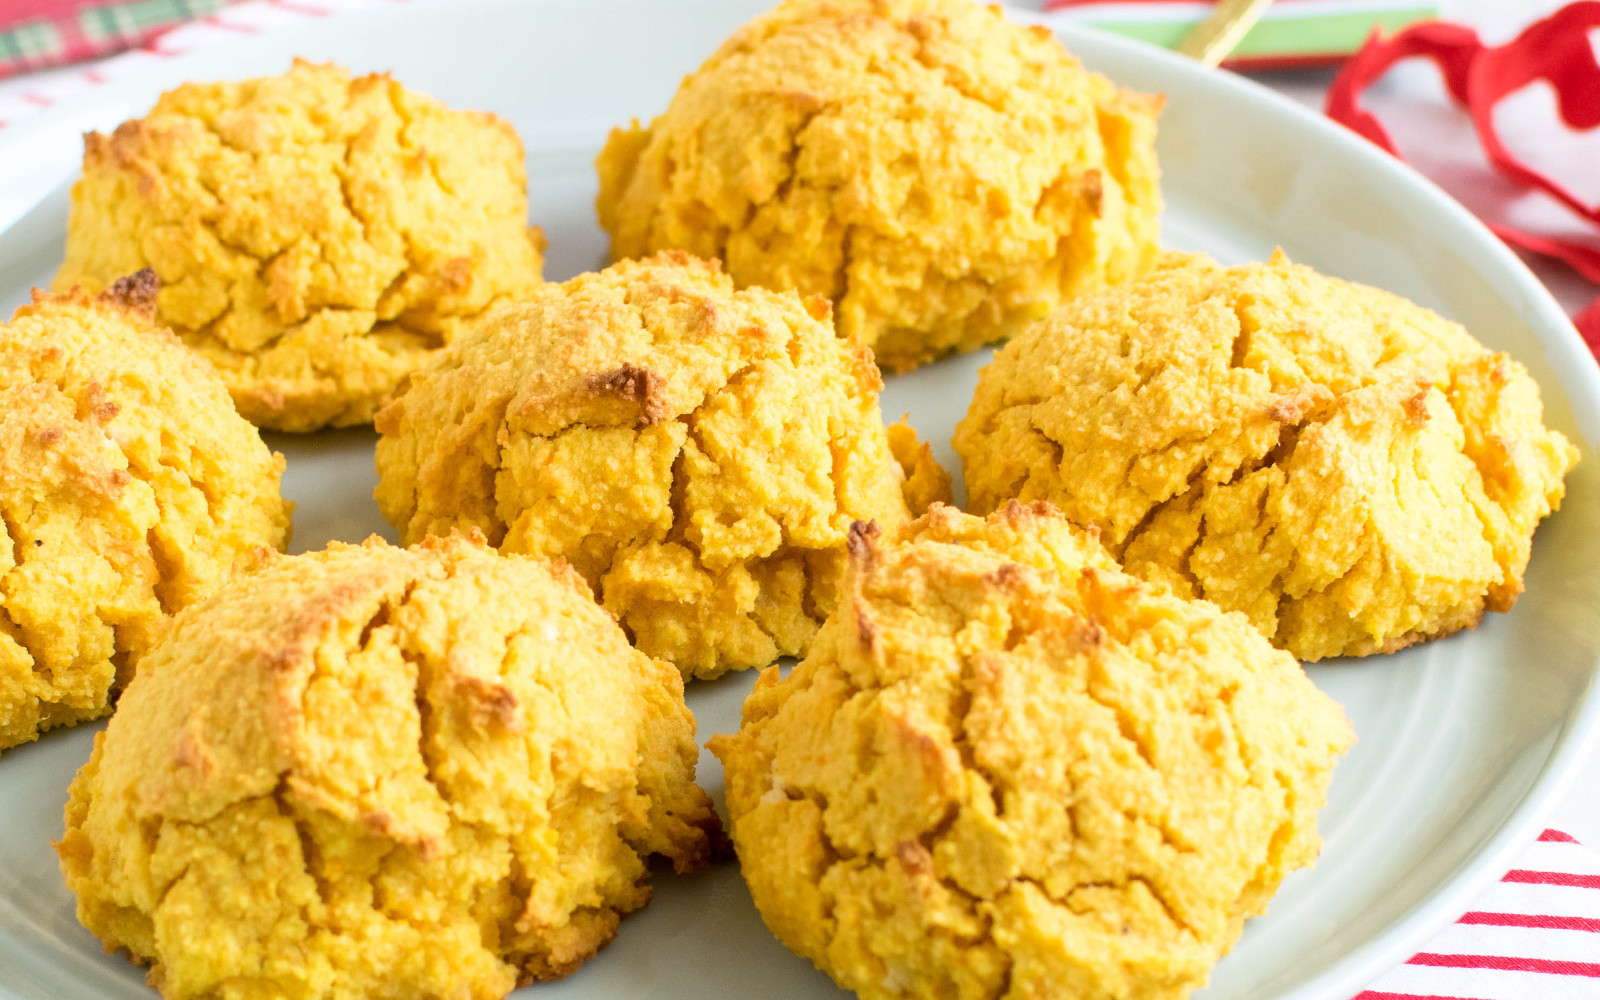 Carrot, Sweet Potato, and Almond Cookies